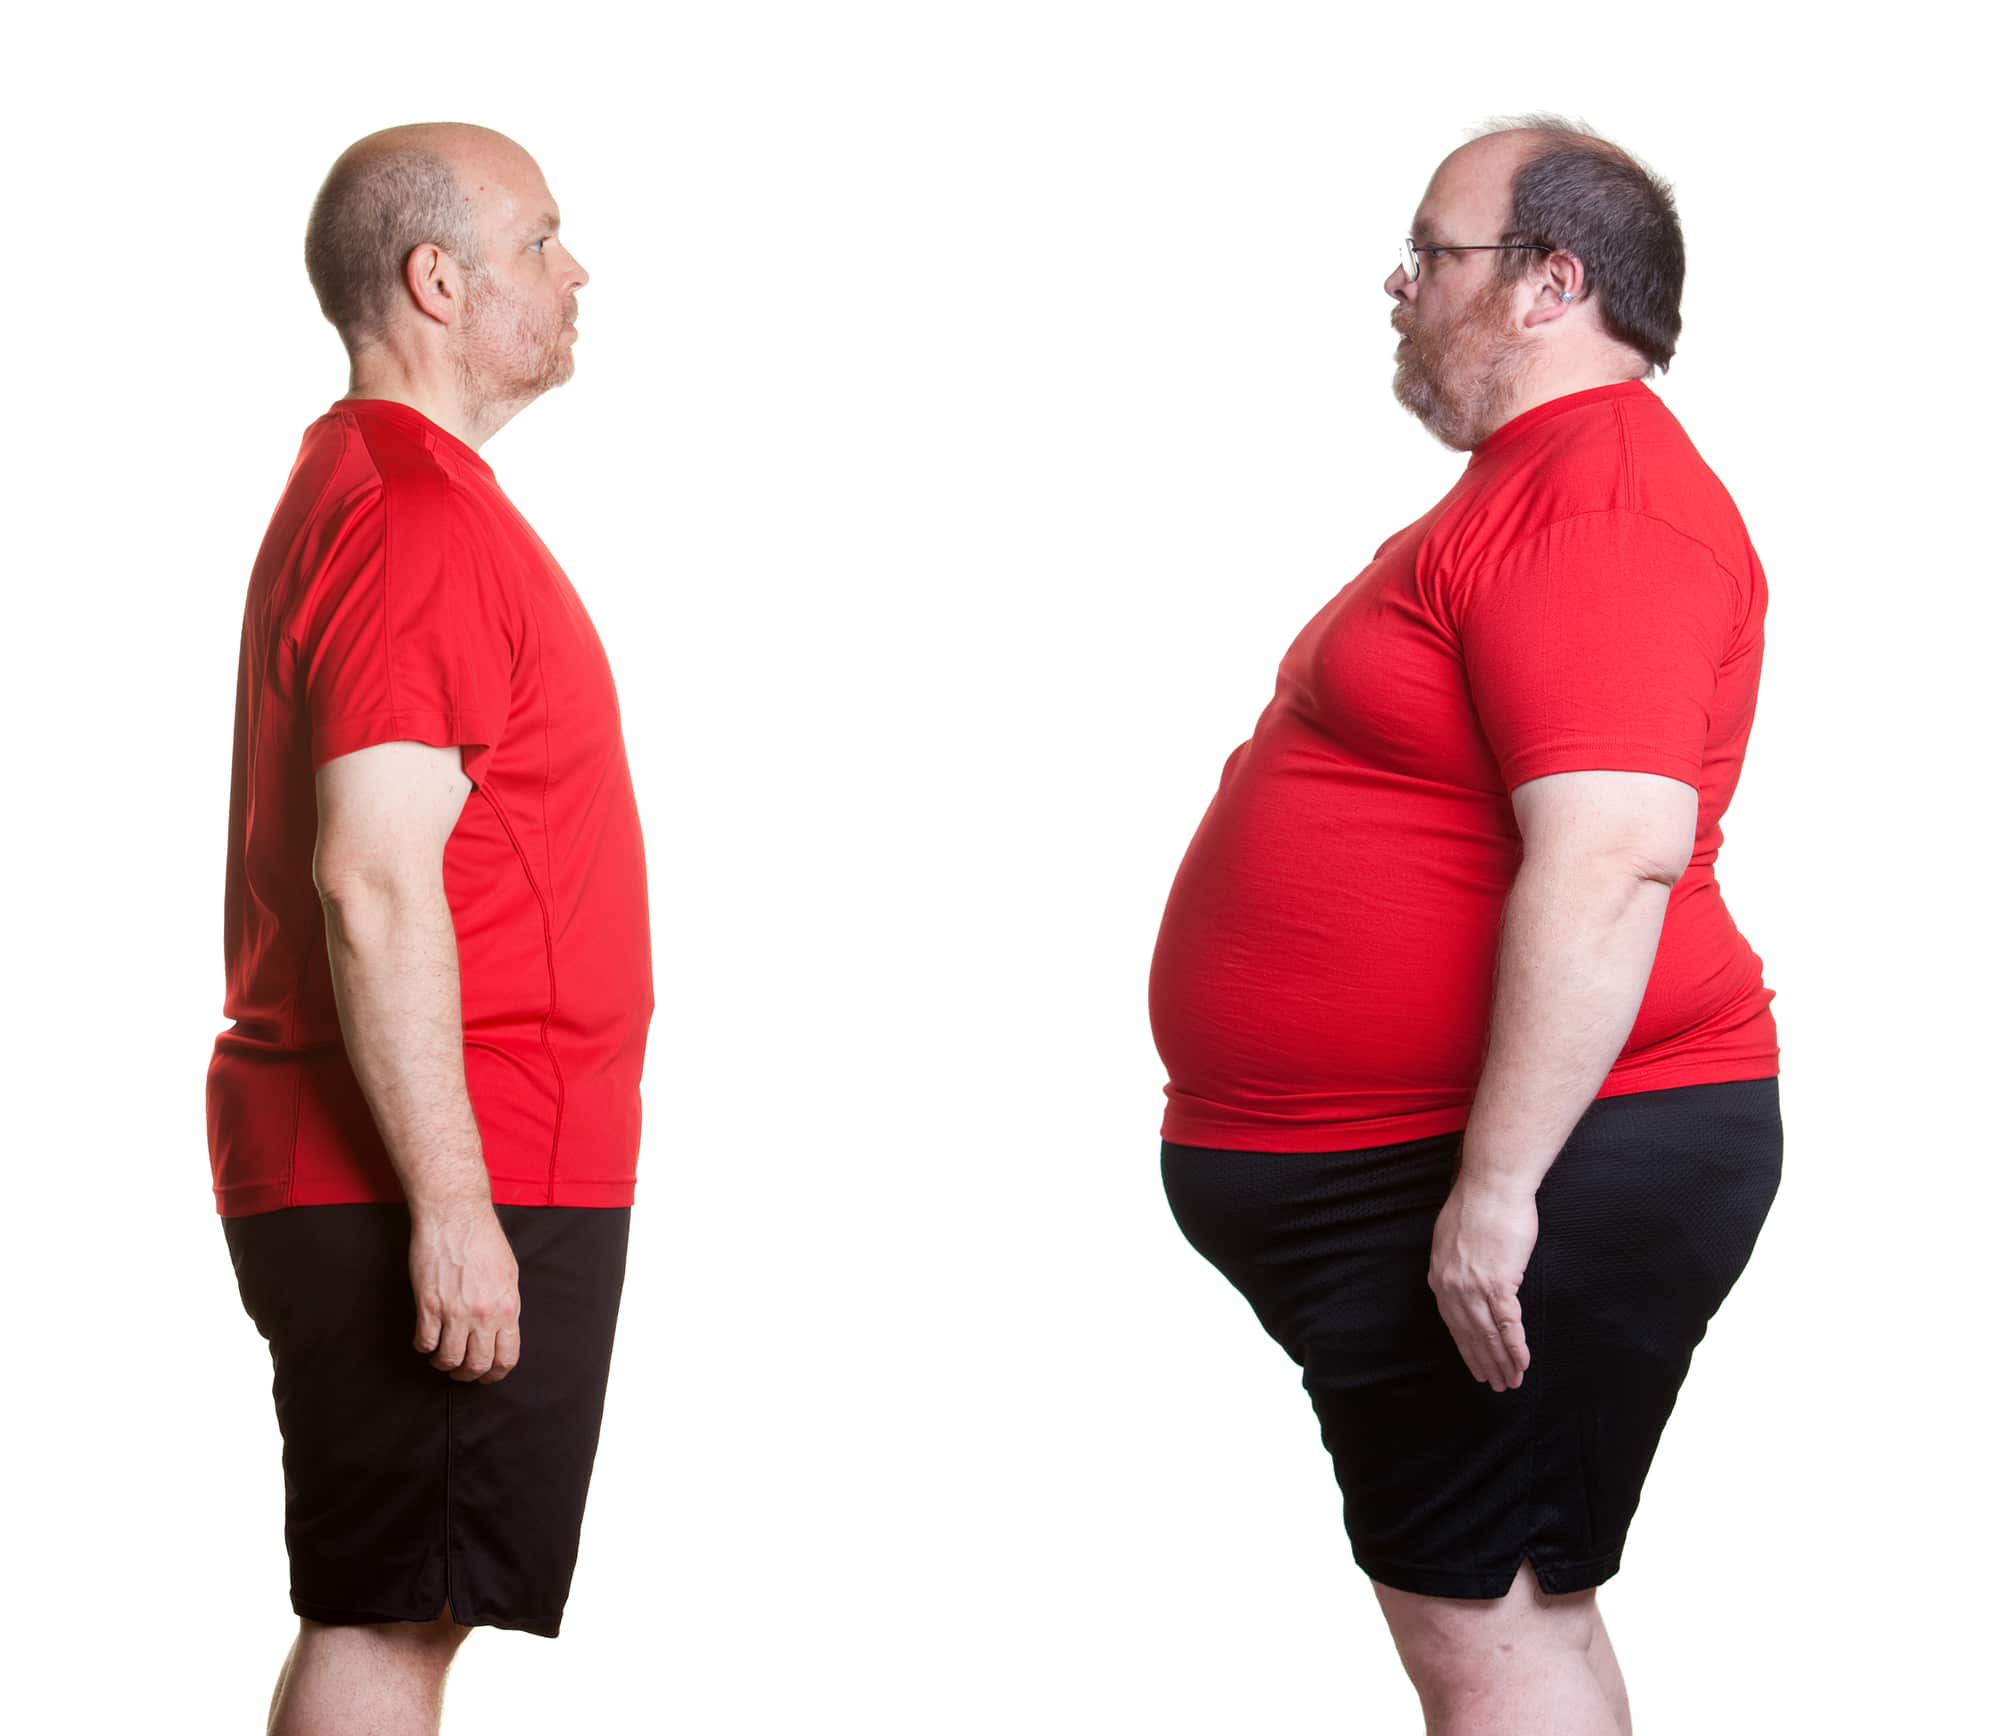 picture of man losing weight show what else you can do besides using your spouse's cpap machine